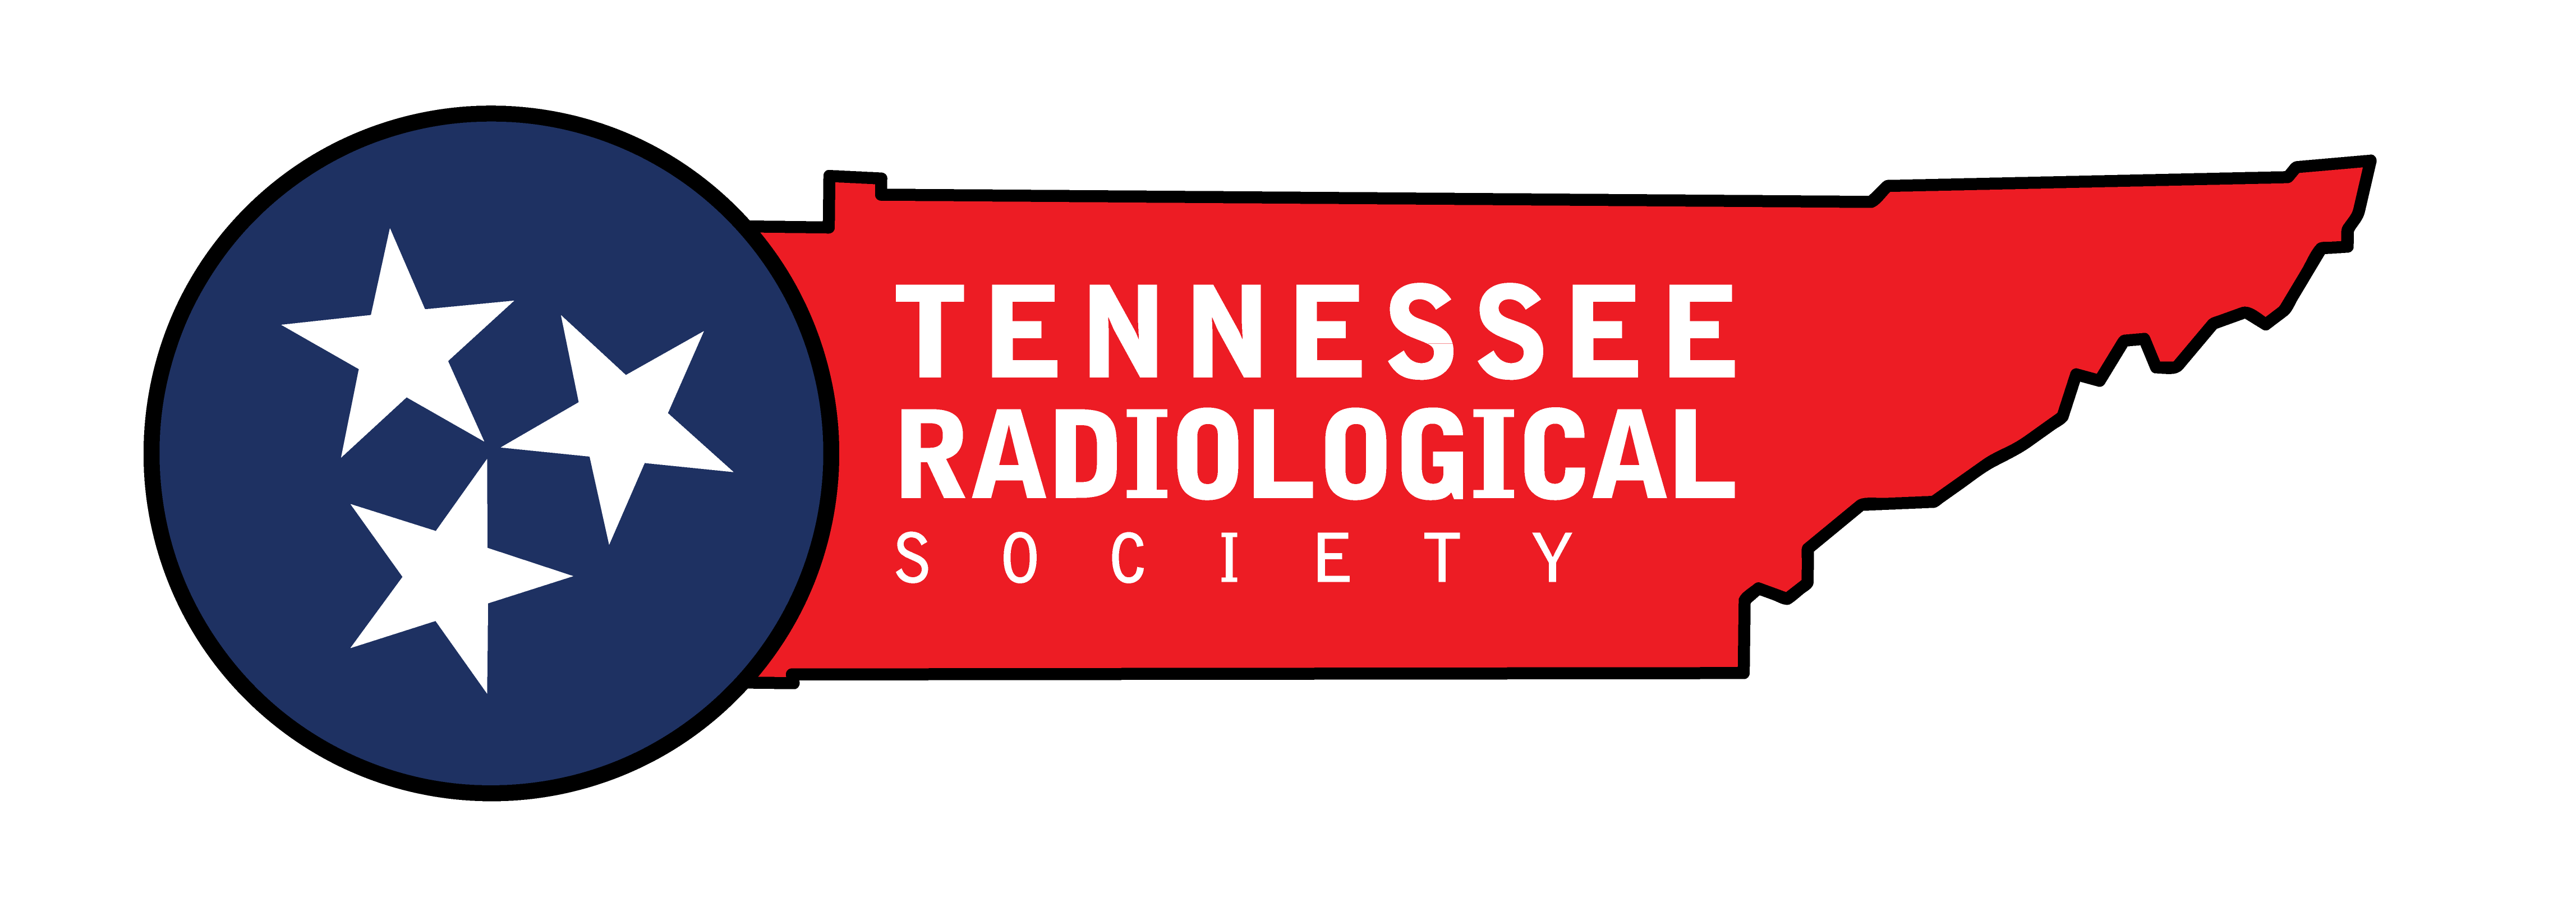 Tennessee Radiological Society